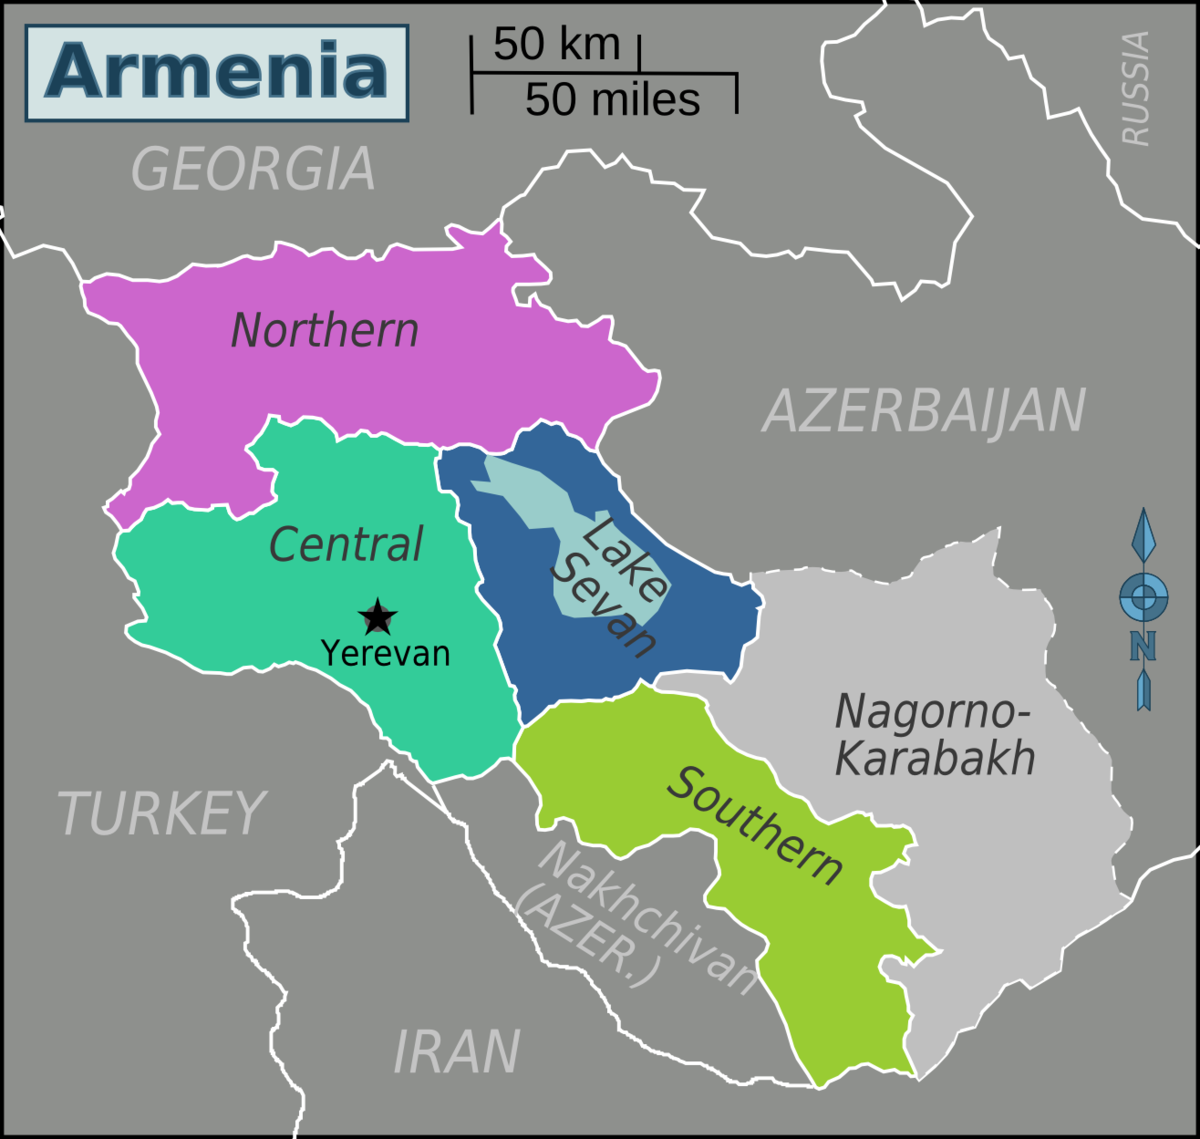 Armenia Travel guide at Wikivoyage